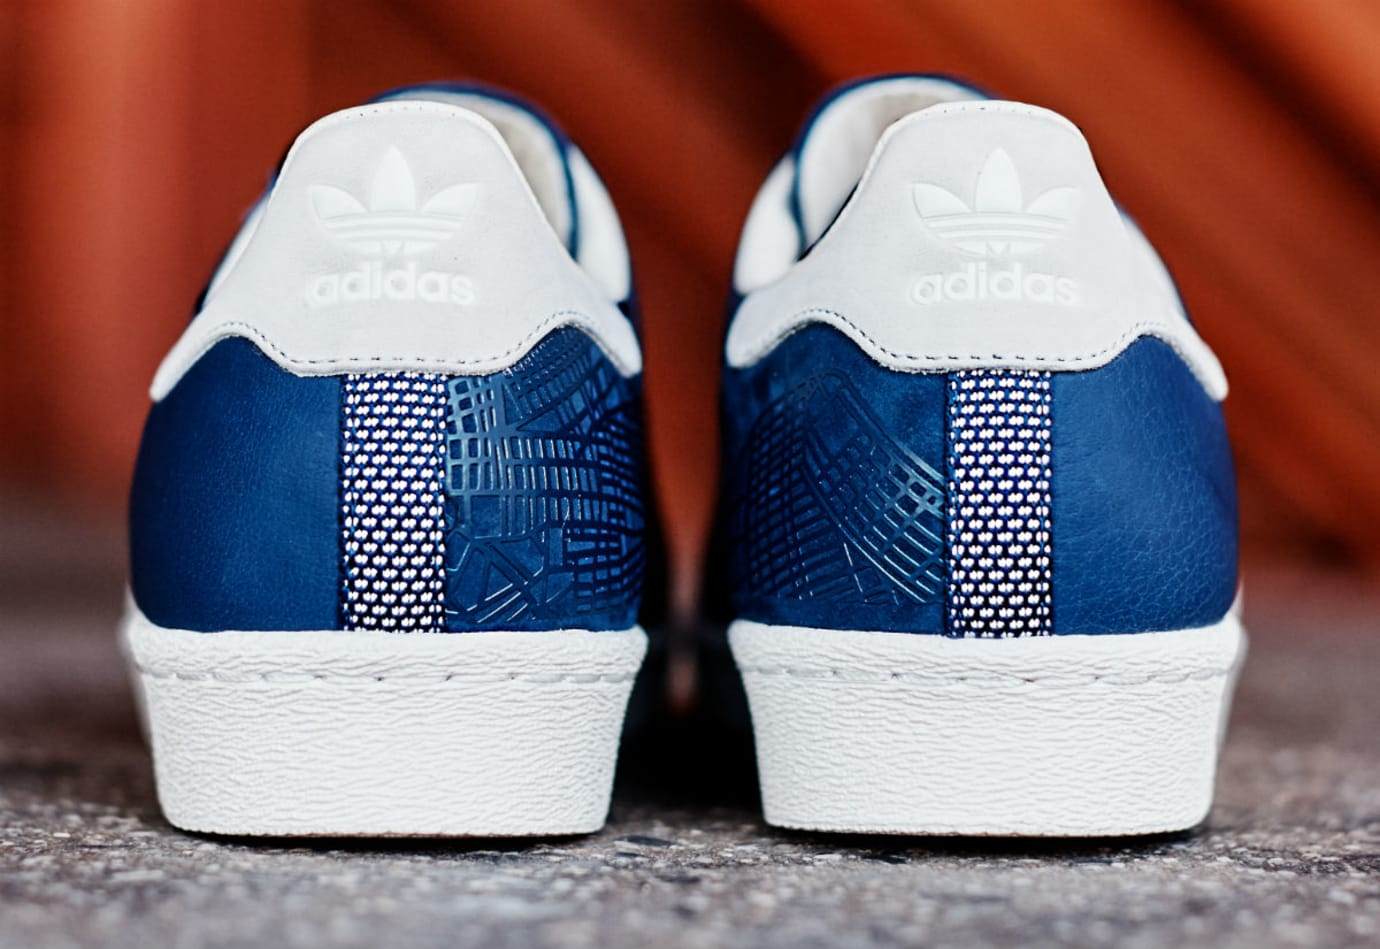 Adidas Superstar NYC Flagship Exclusive (5)